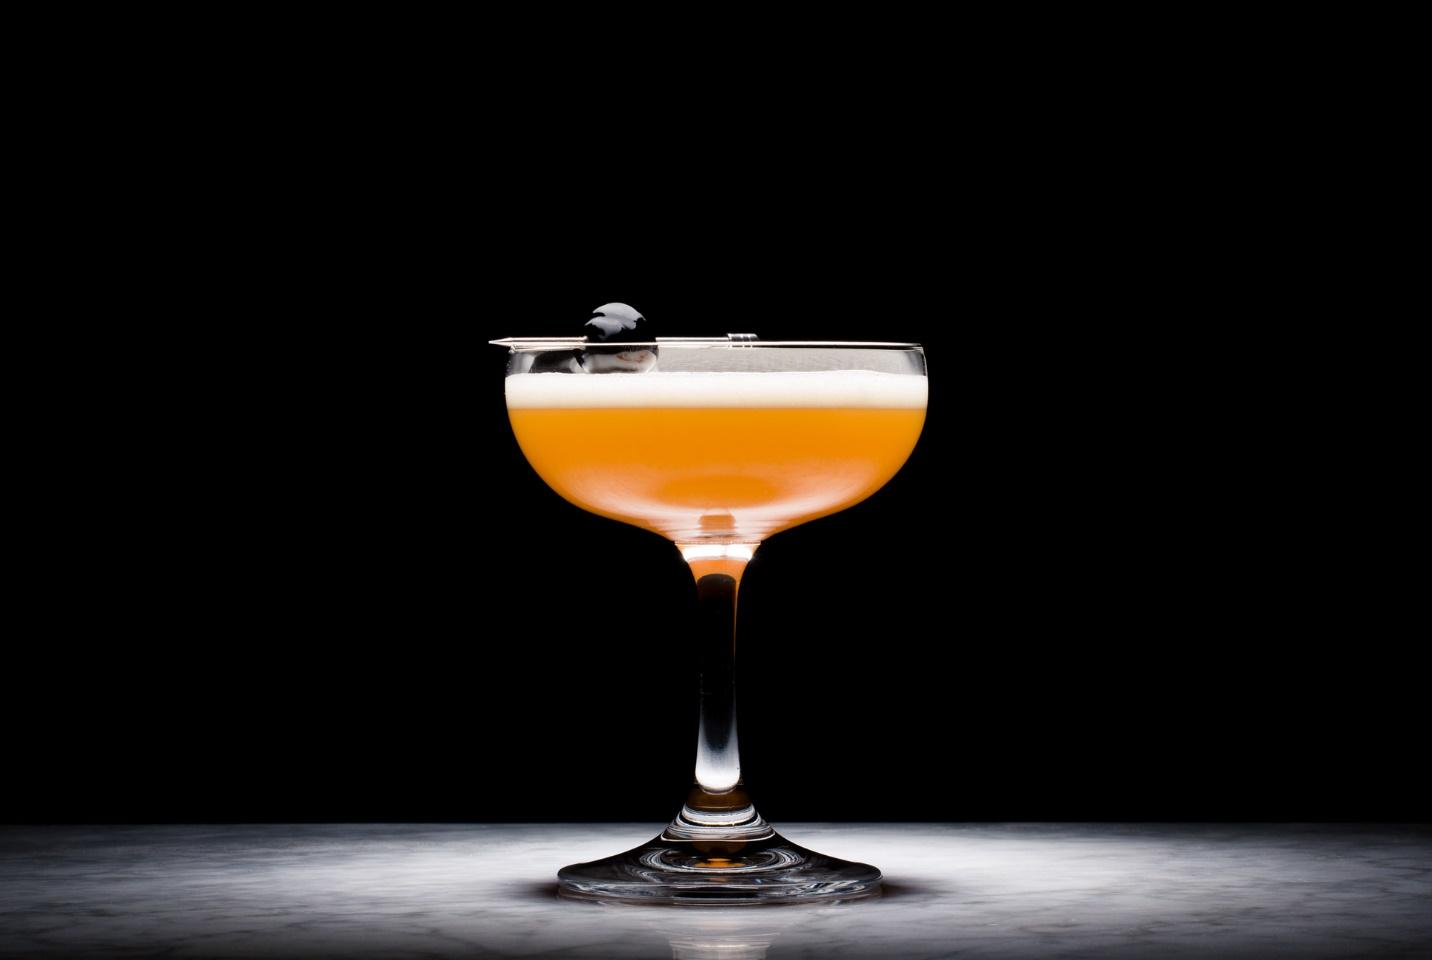 Golden Ticket cocktail